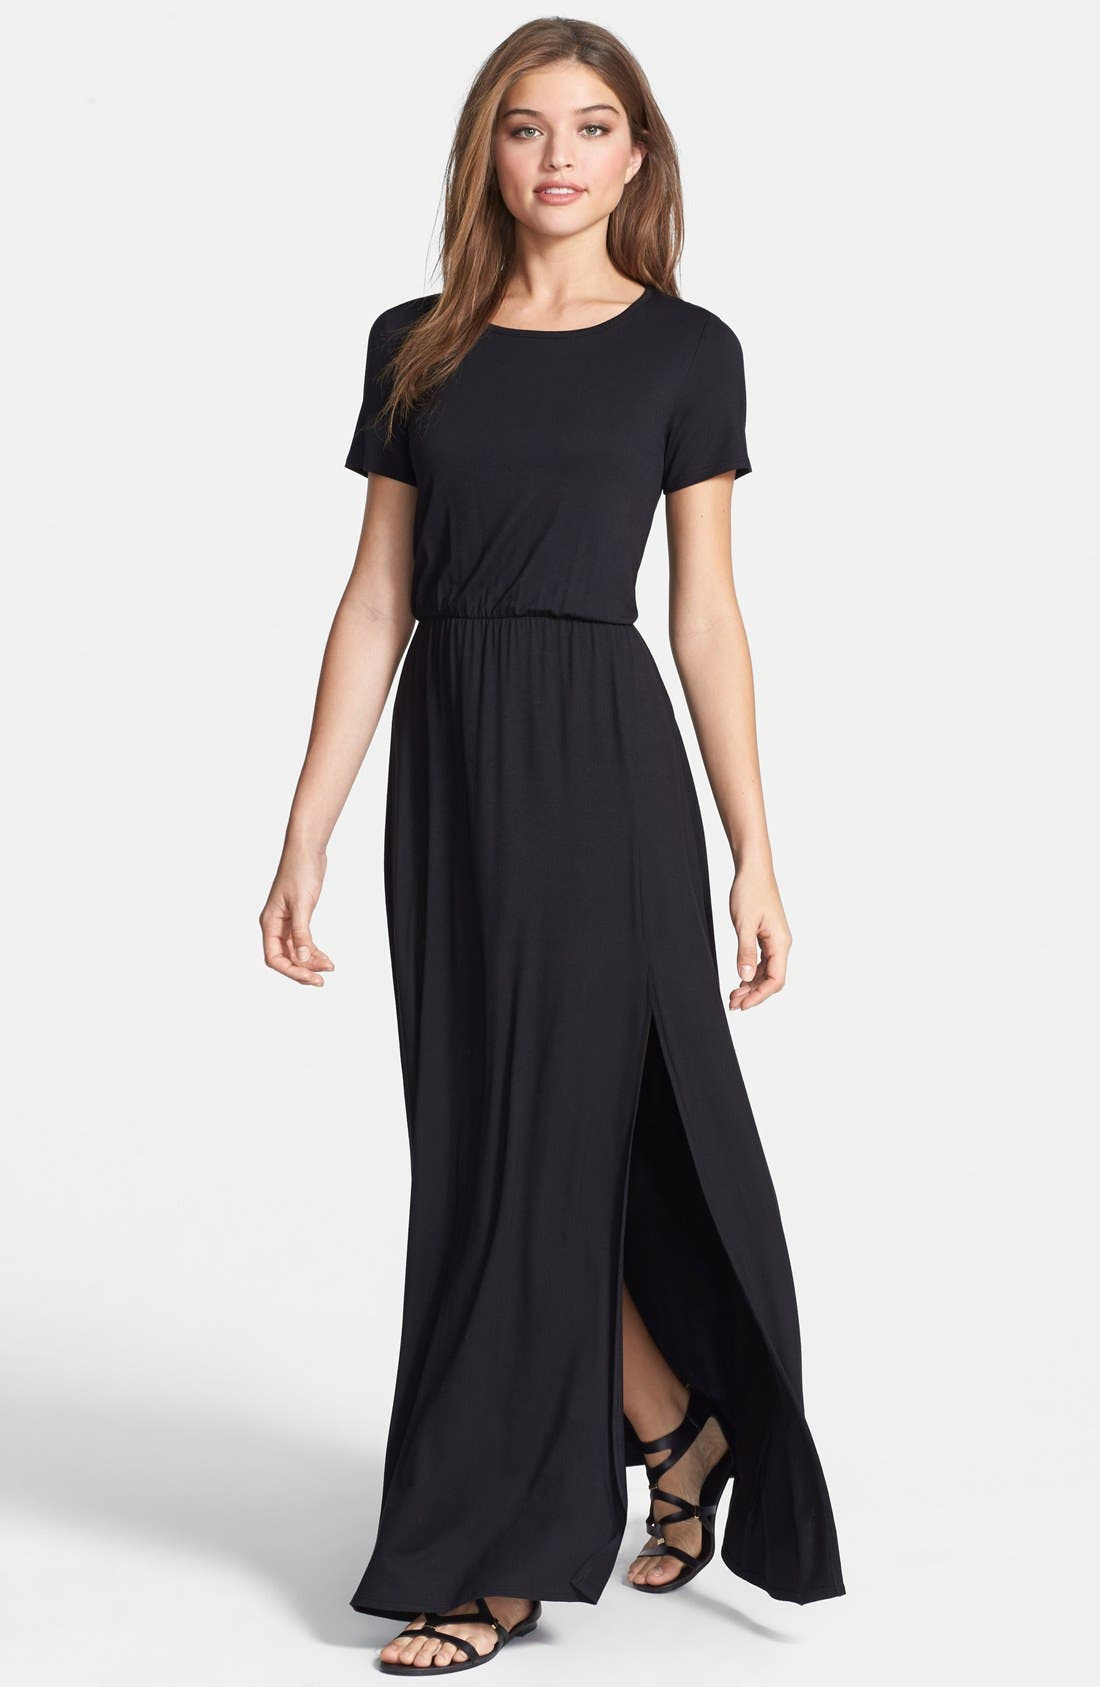 Main Image - Loveappella Cinch Waist Stretch Knit Maxi Dress